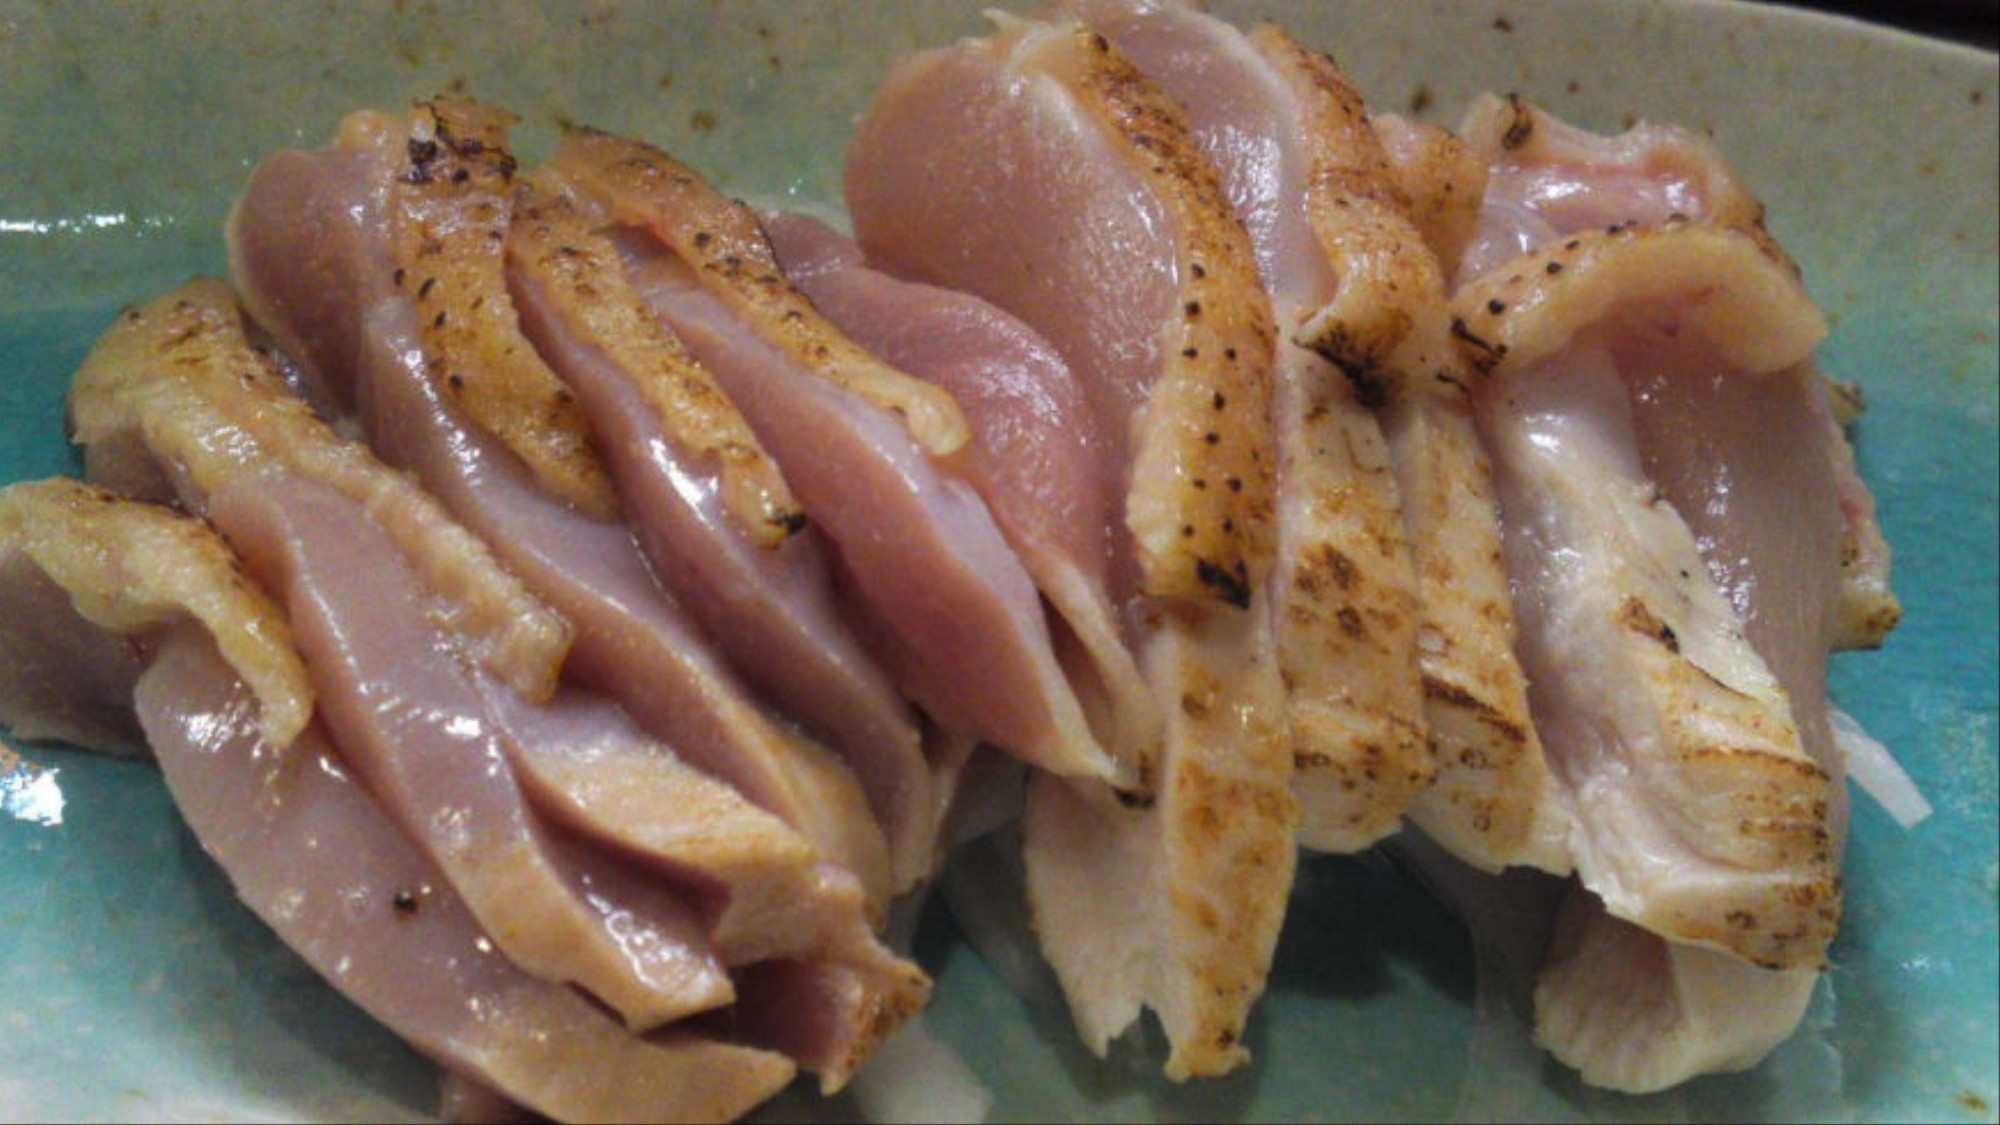 Trolling Aside, Is It Actually Safe to Eat Raw Chicken? - VICE